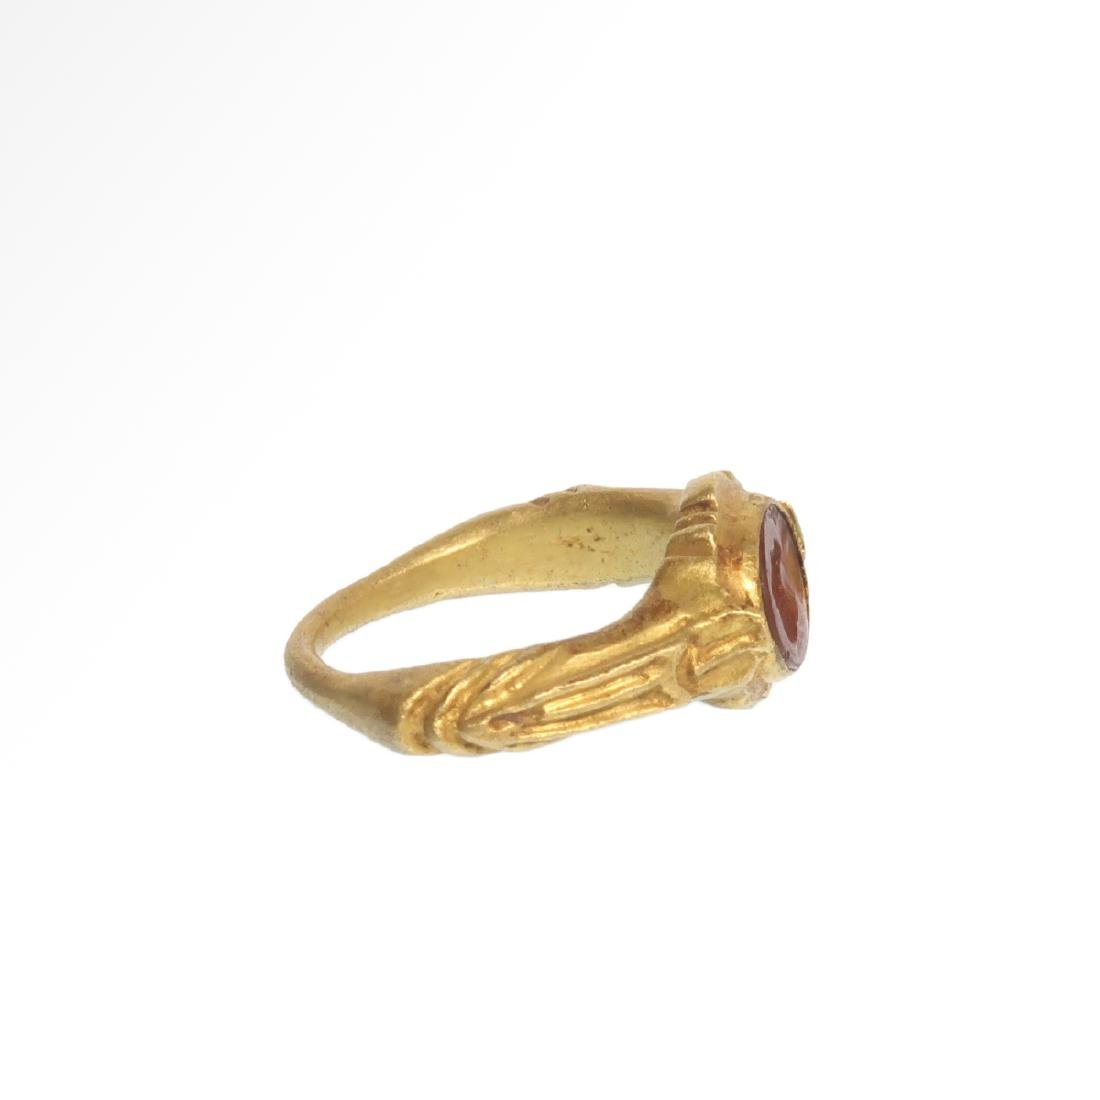 Roman Gold Ring with Cornelian Intaglio Engraved with - 5